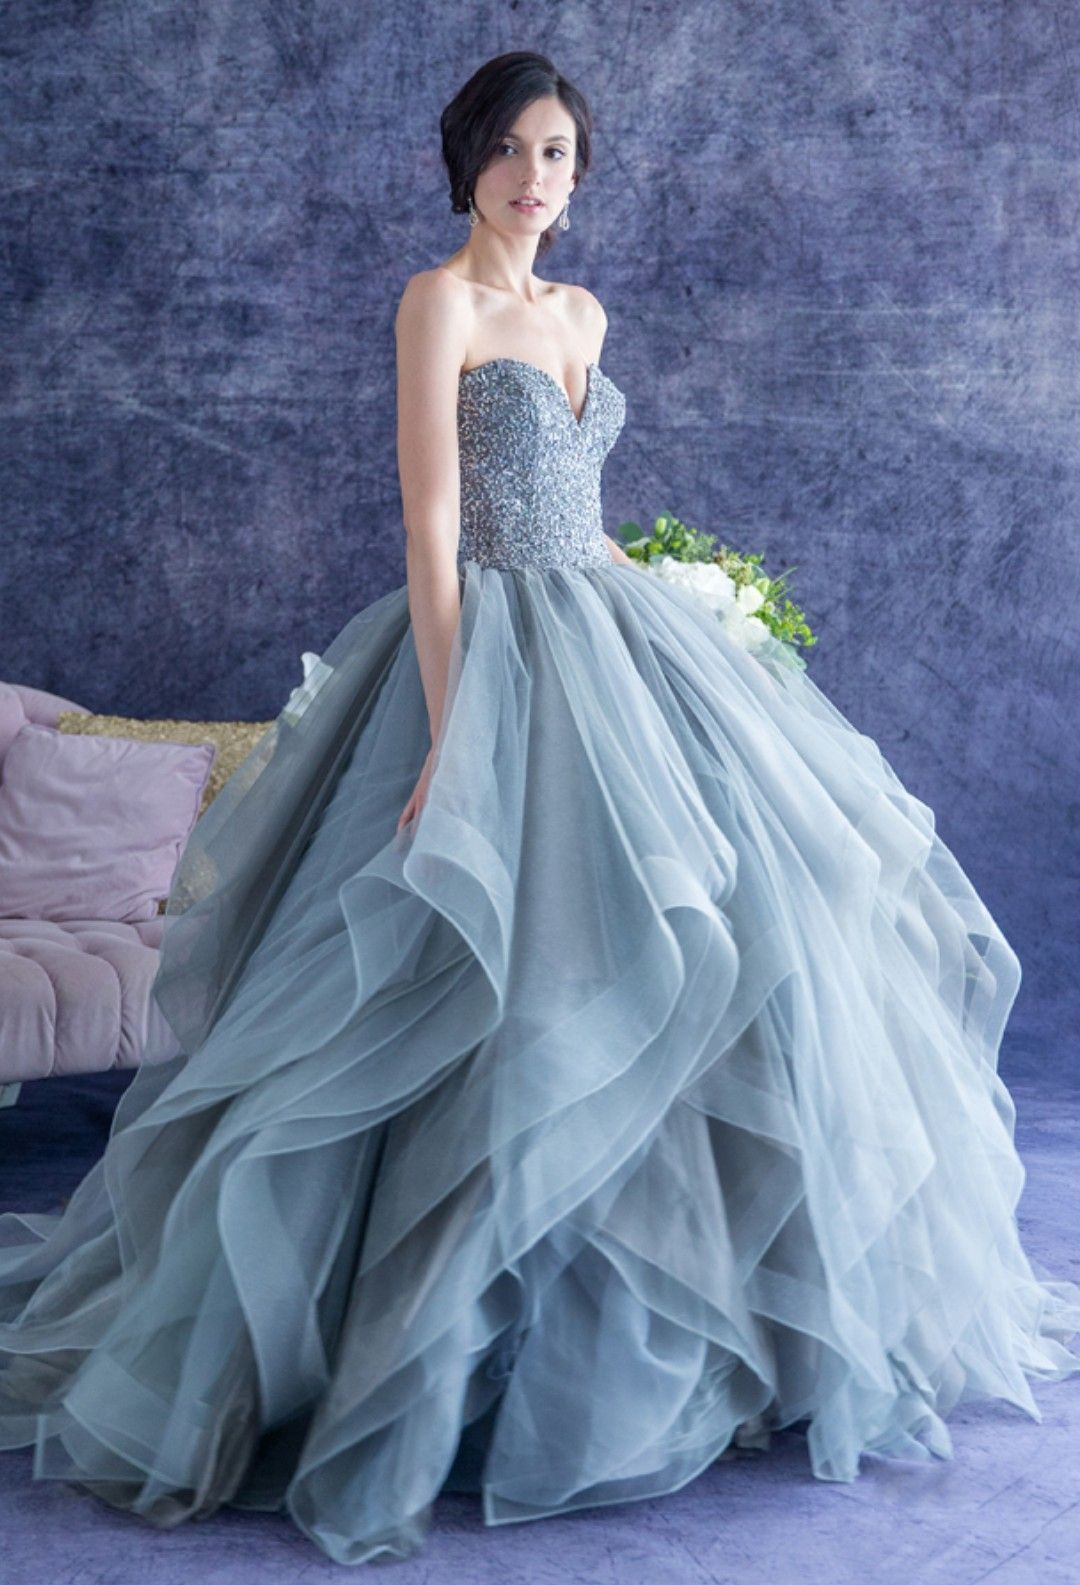 Pin by gienesa moreira on prom pinterest grey weddings dress